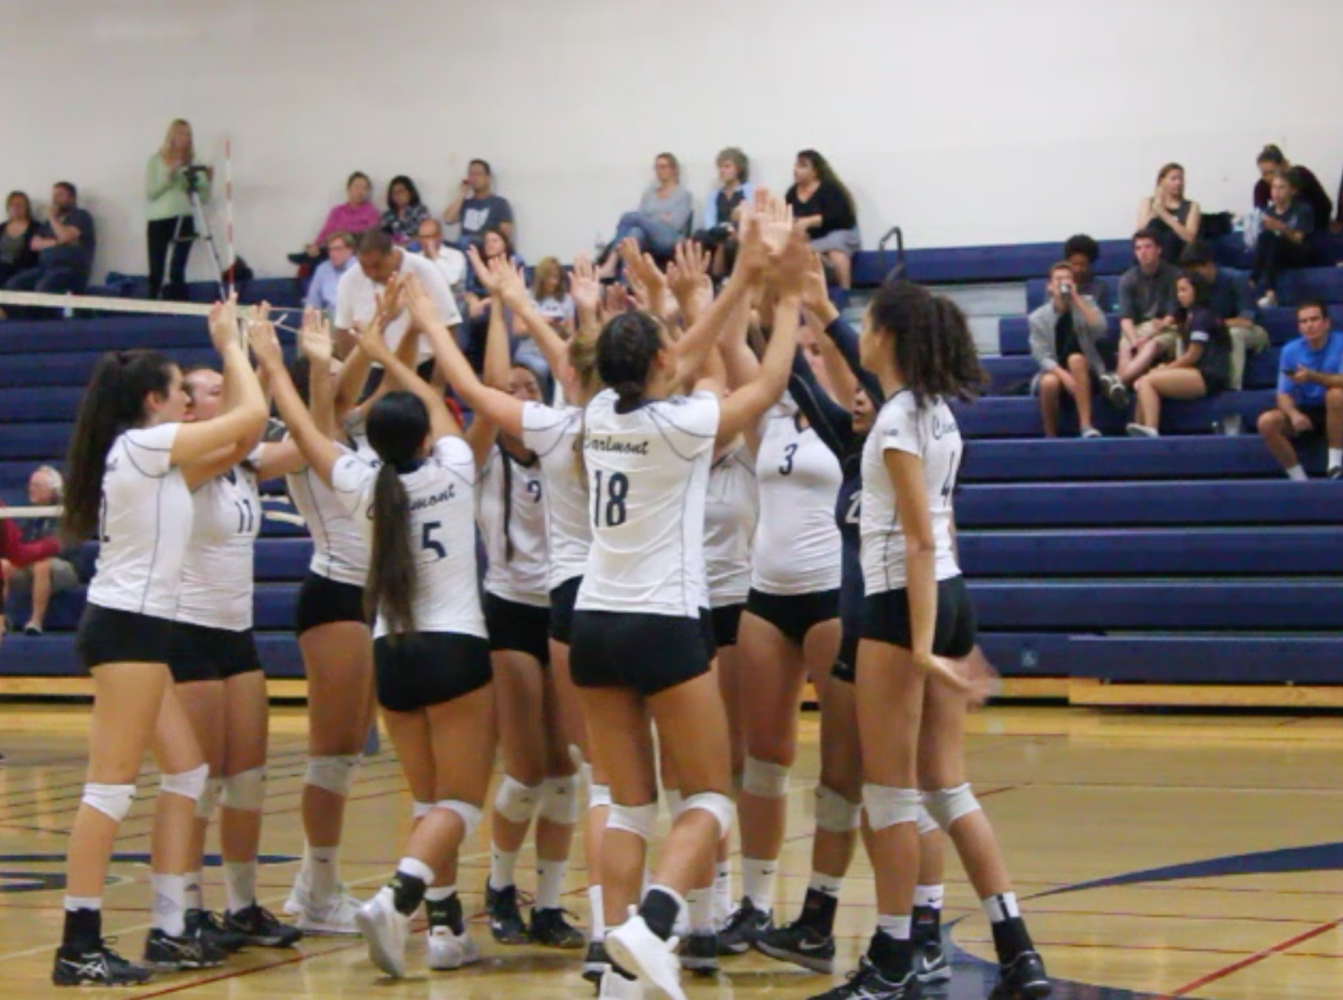 Scots cheer after winning the point in a long rally against the San Mateo Bearcats.